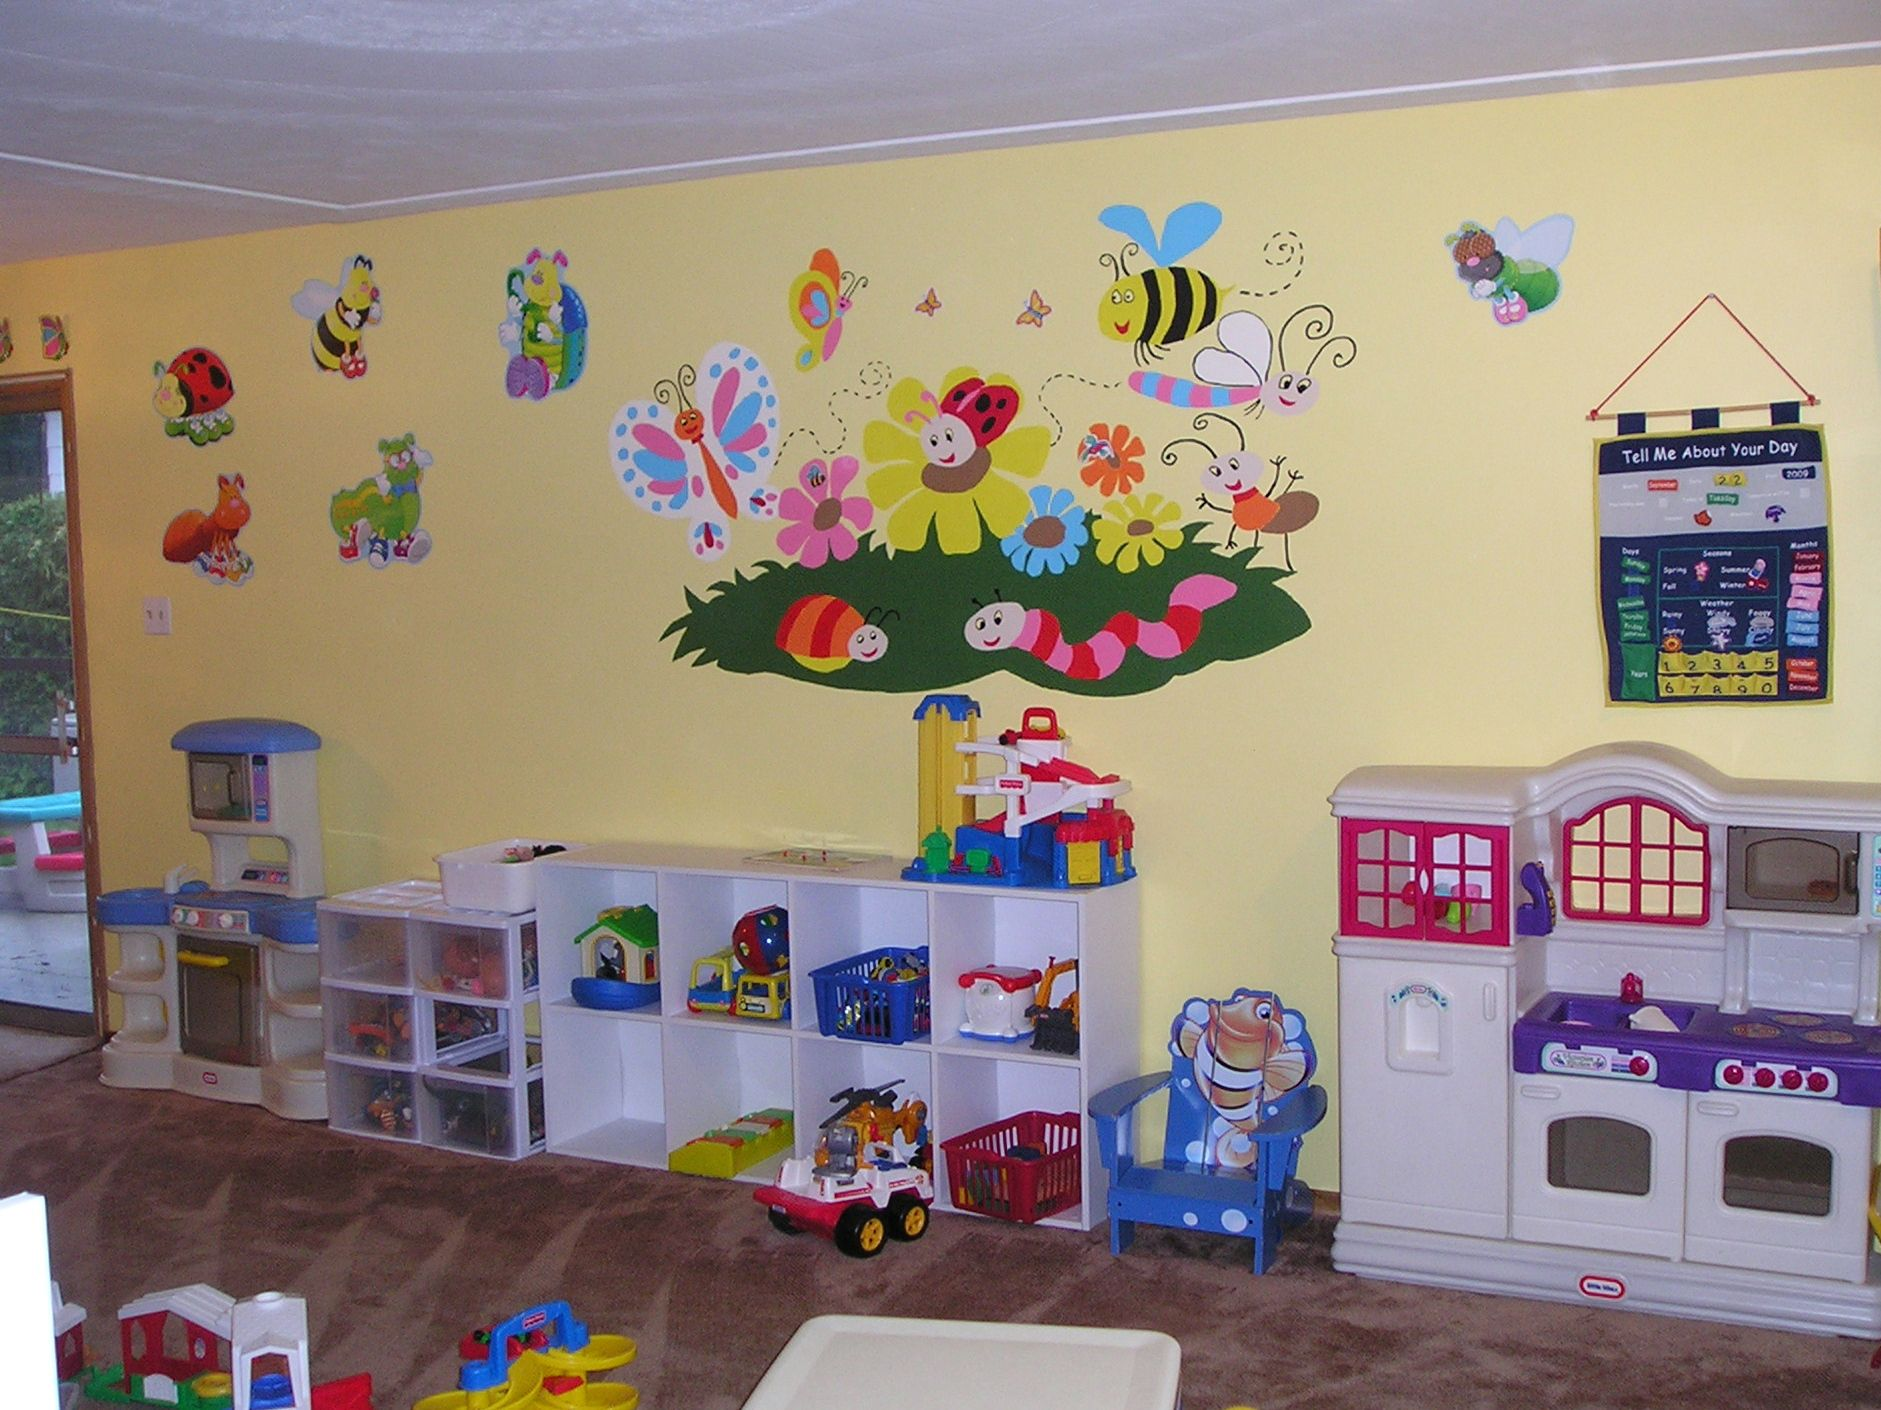 Daycare Decorating Ideas Decorating Ideas Daycare Decor Home Daycare Home Daycare Rooms